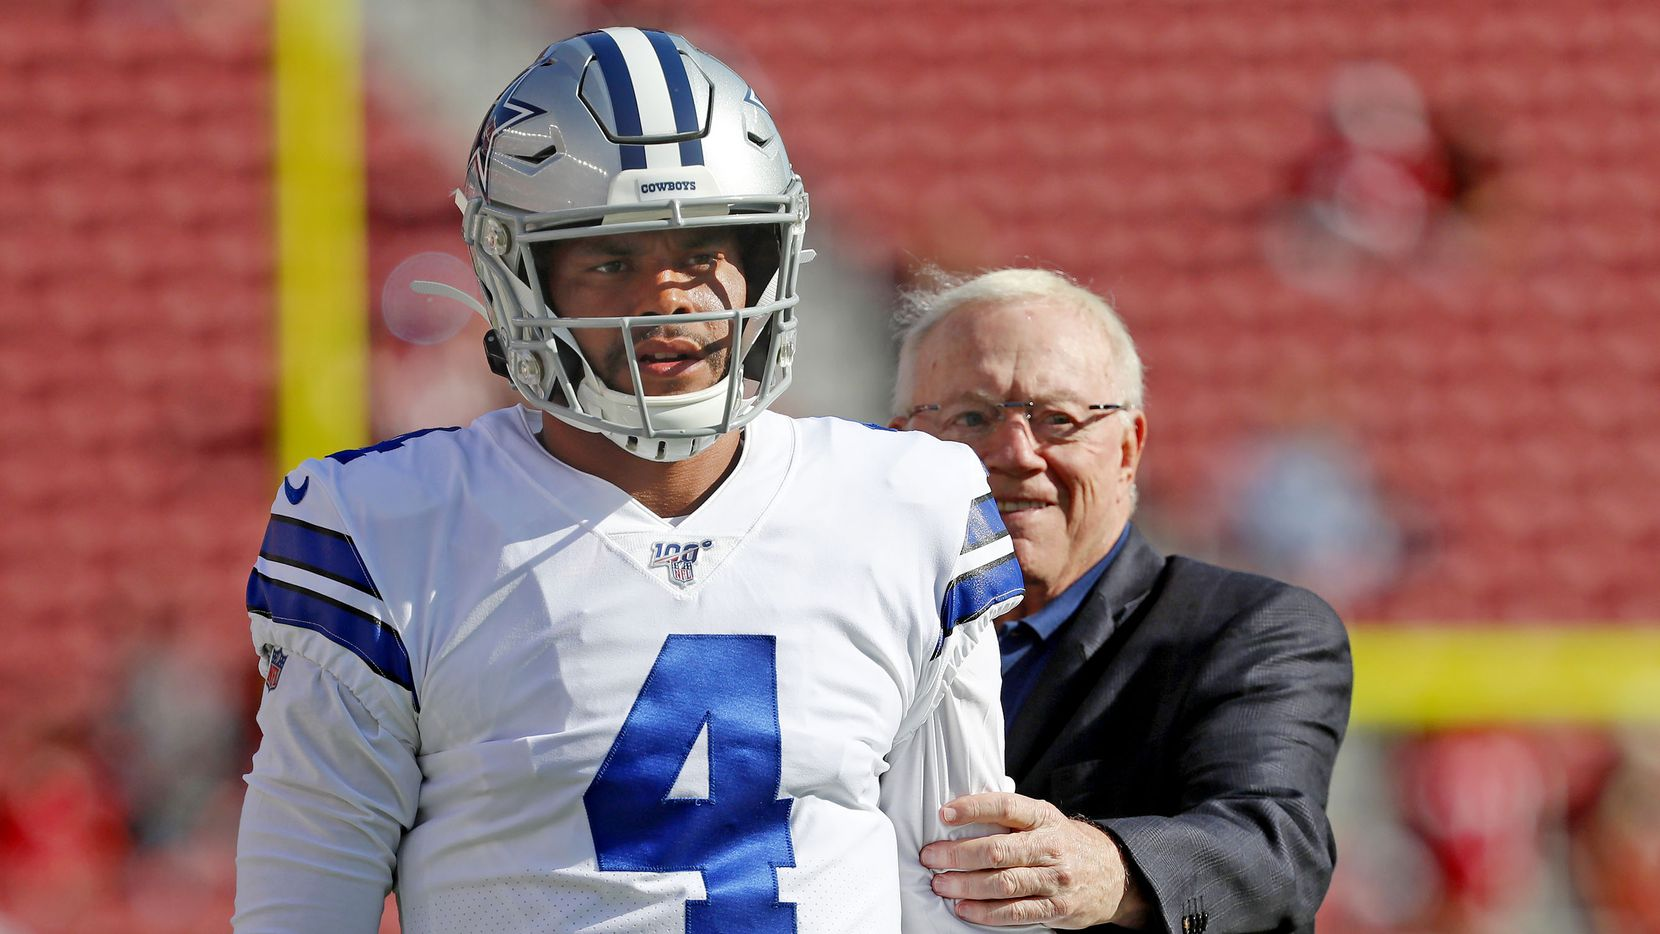 Dallas Cowboys owner Jerry Jones, right, stands behind quarterback Dak Prescott (4) as player warm up before an NFL preseason football game against the San Francisco 49ers in Santa Clara, Calif., Saturday, Aug. 10, 2019.